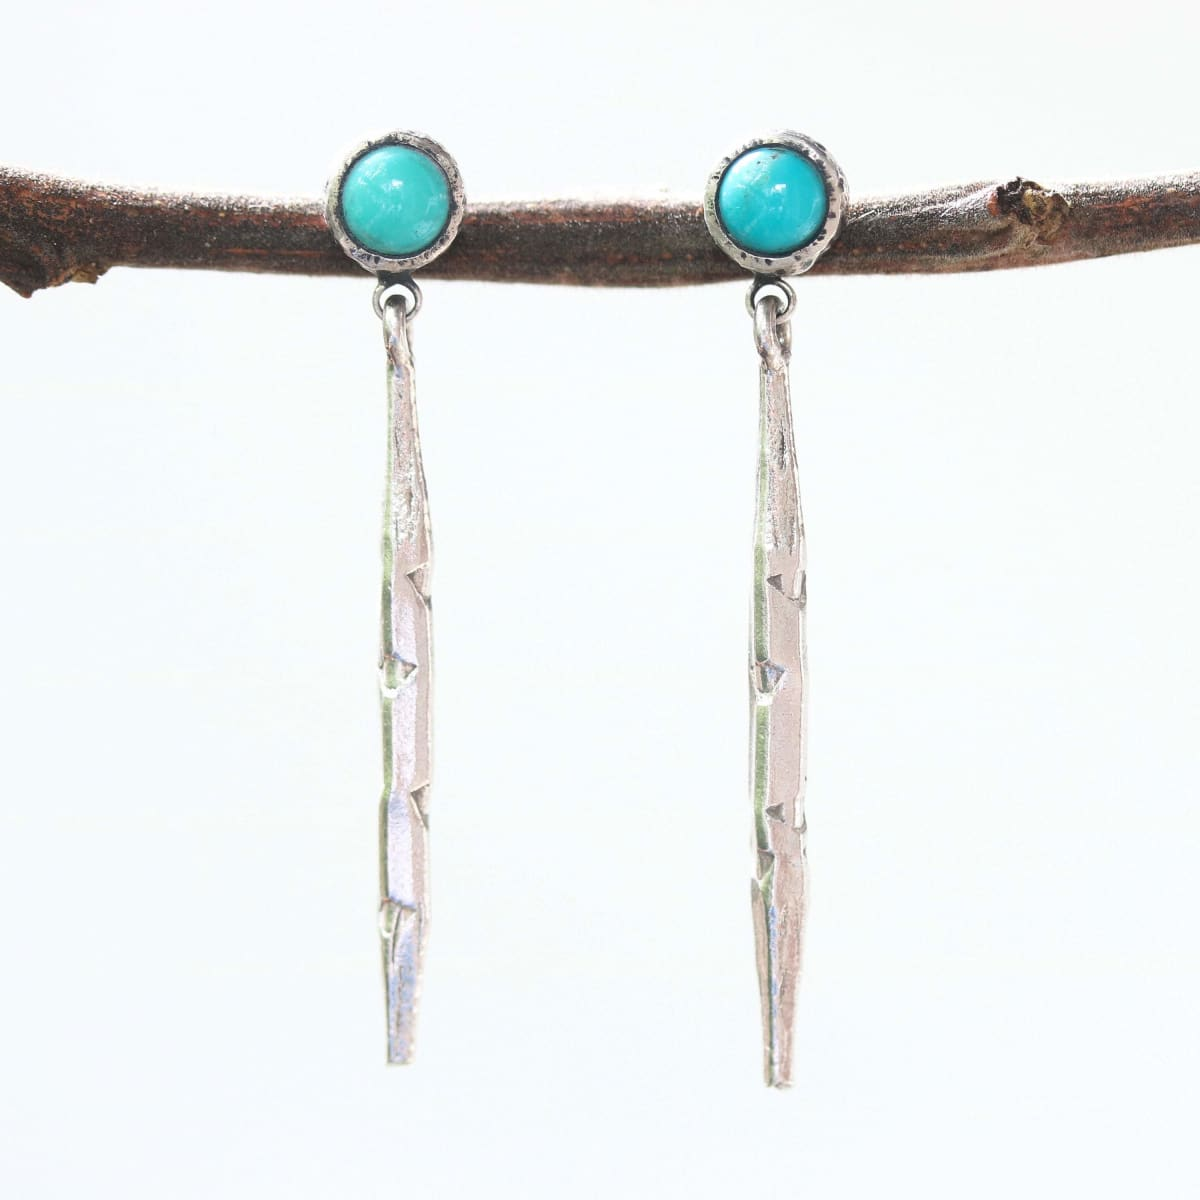 Silver spike earrings with round turquoise in silver bezel setting on sterling stud style - by Metal Studio Jewelry